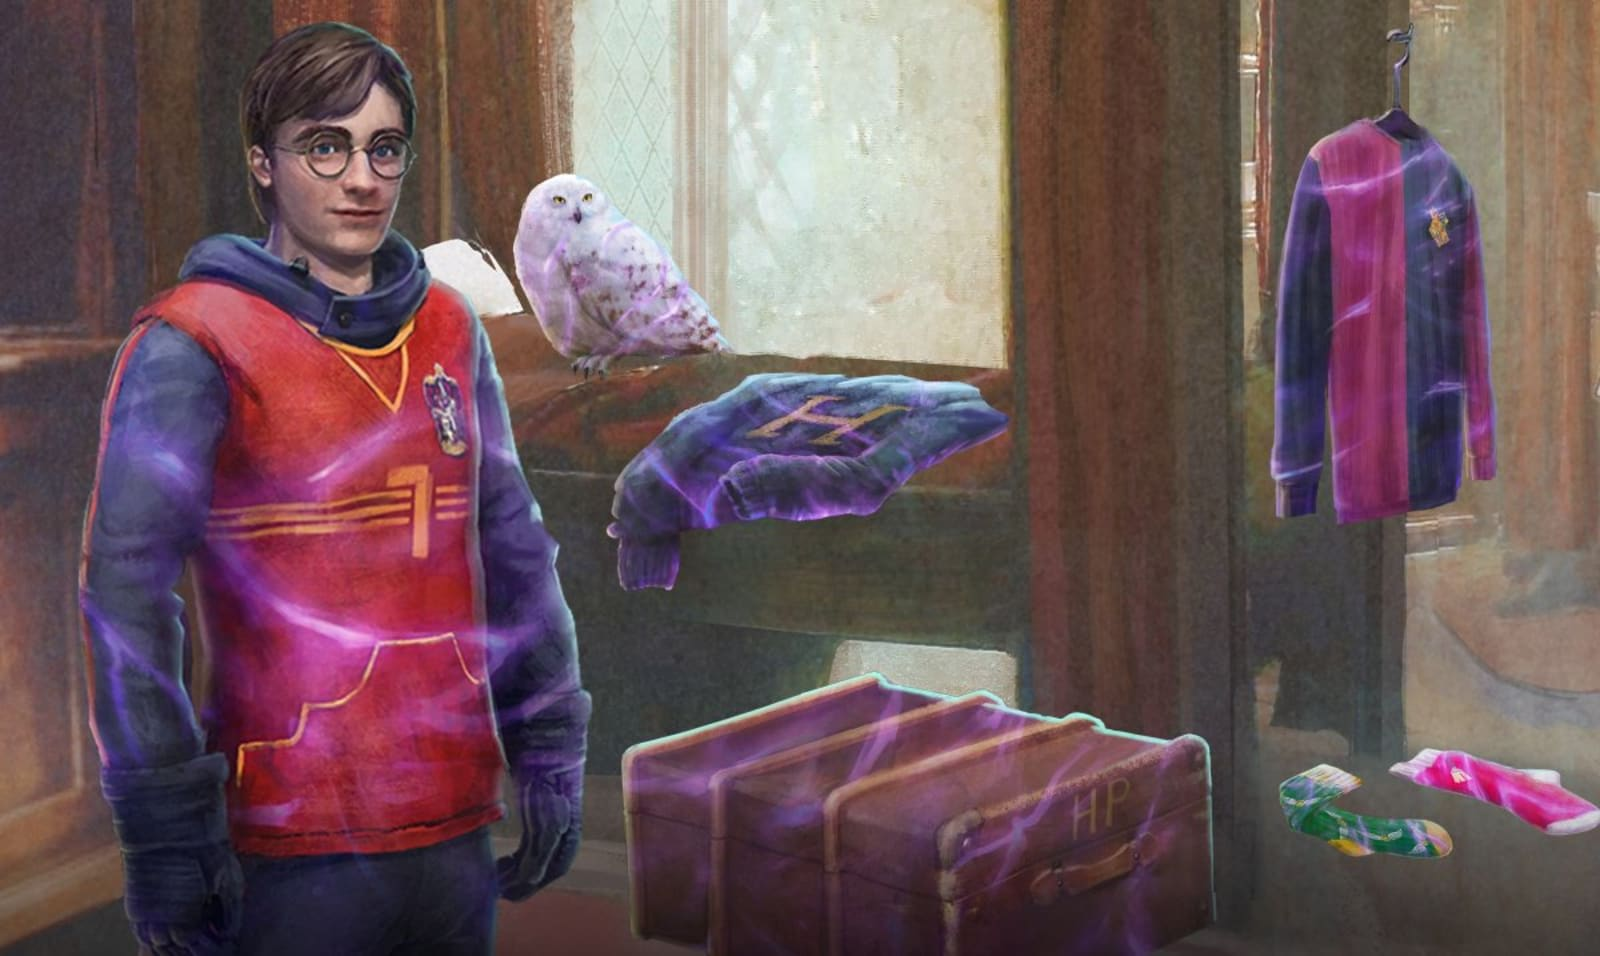 Join the first 'Harry Potter: Wizards Unite' community day tomorrow